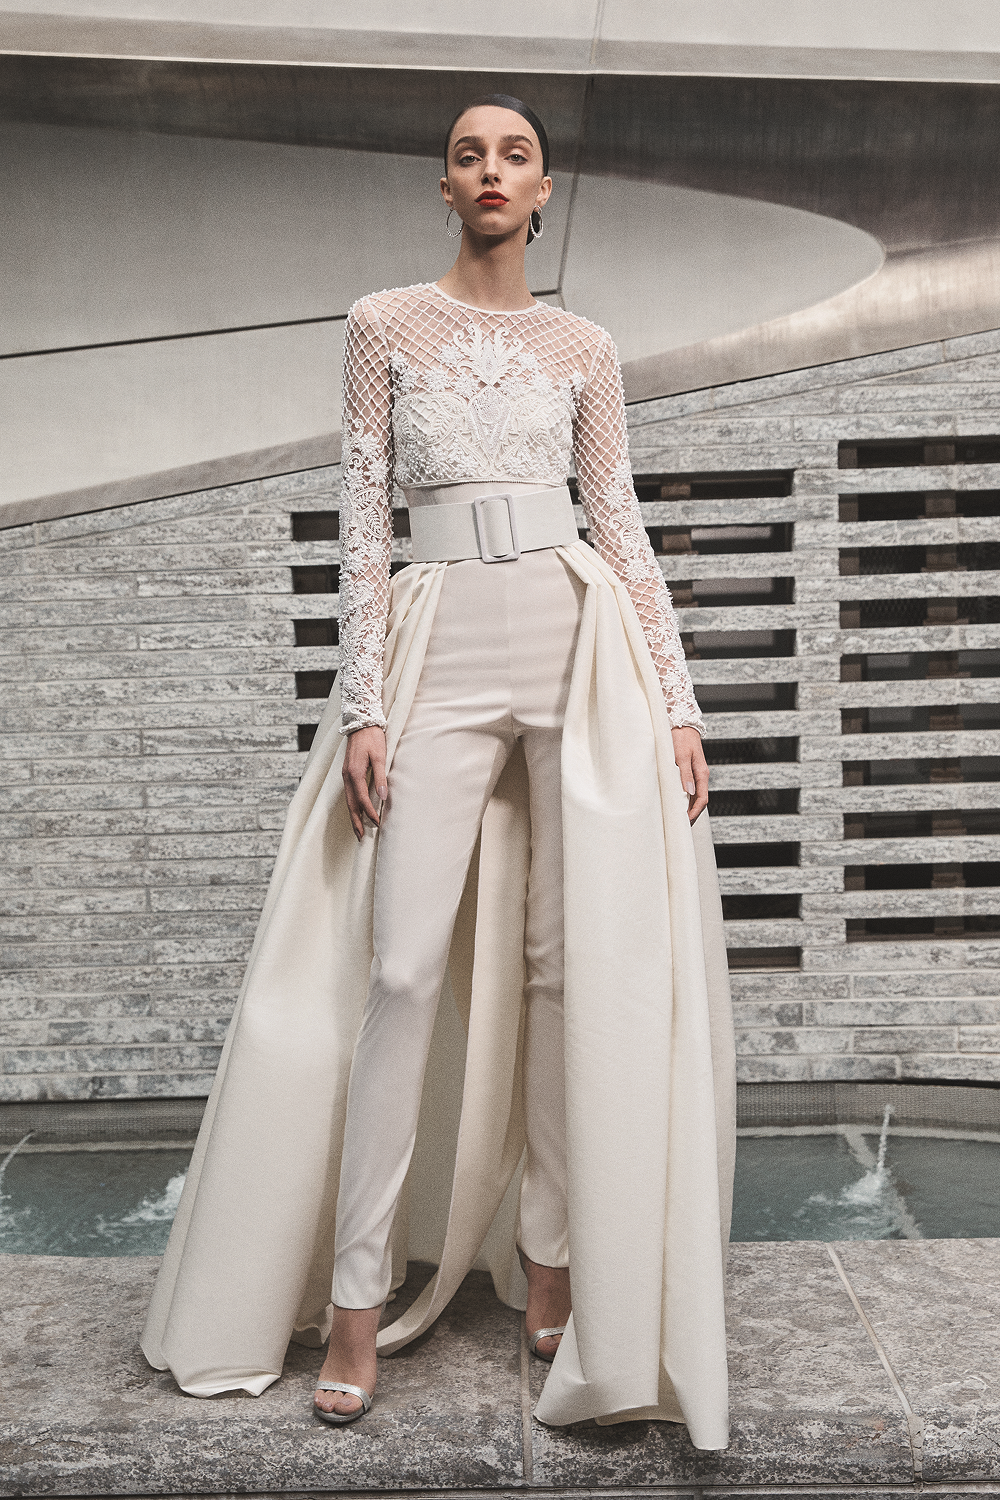 A Naeem Khan linen wedding jumpsuit or pantsuit with lace and a detachable skirt